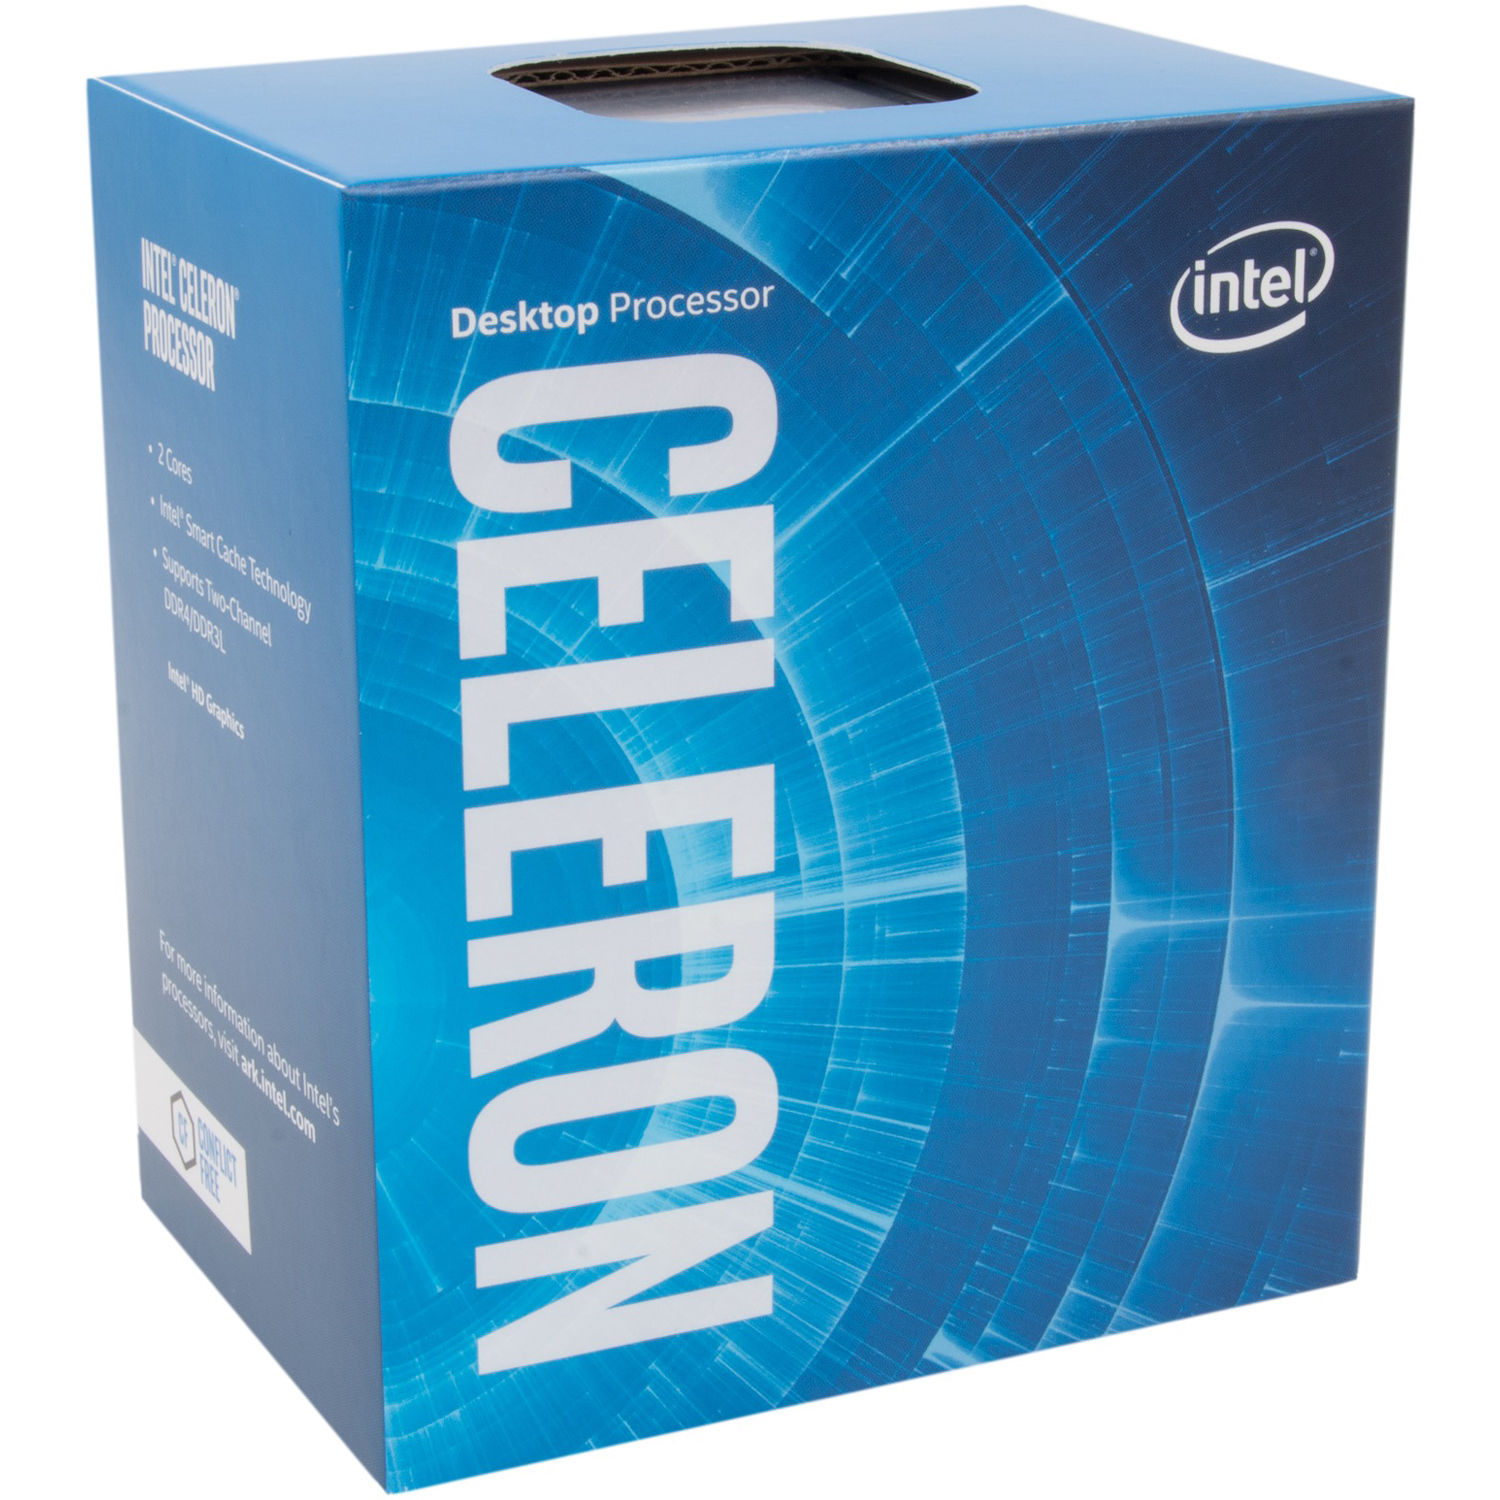 CPU INTEL Celeron G3930 2.90GHz